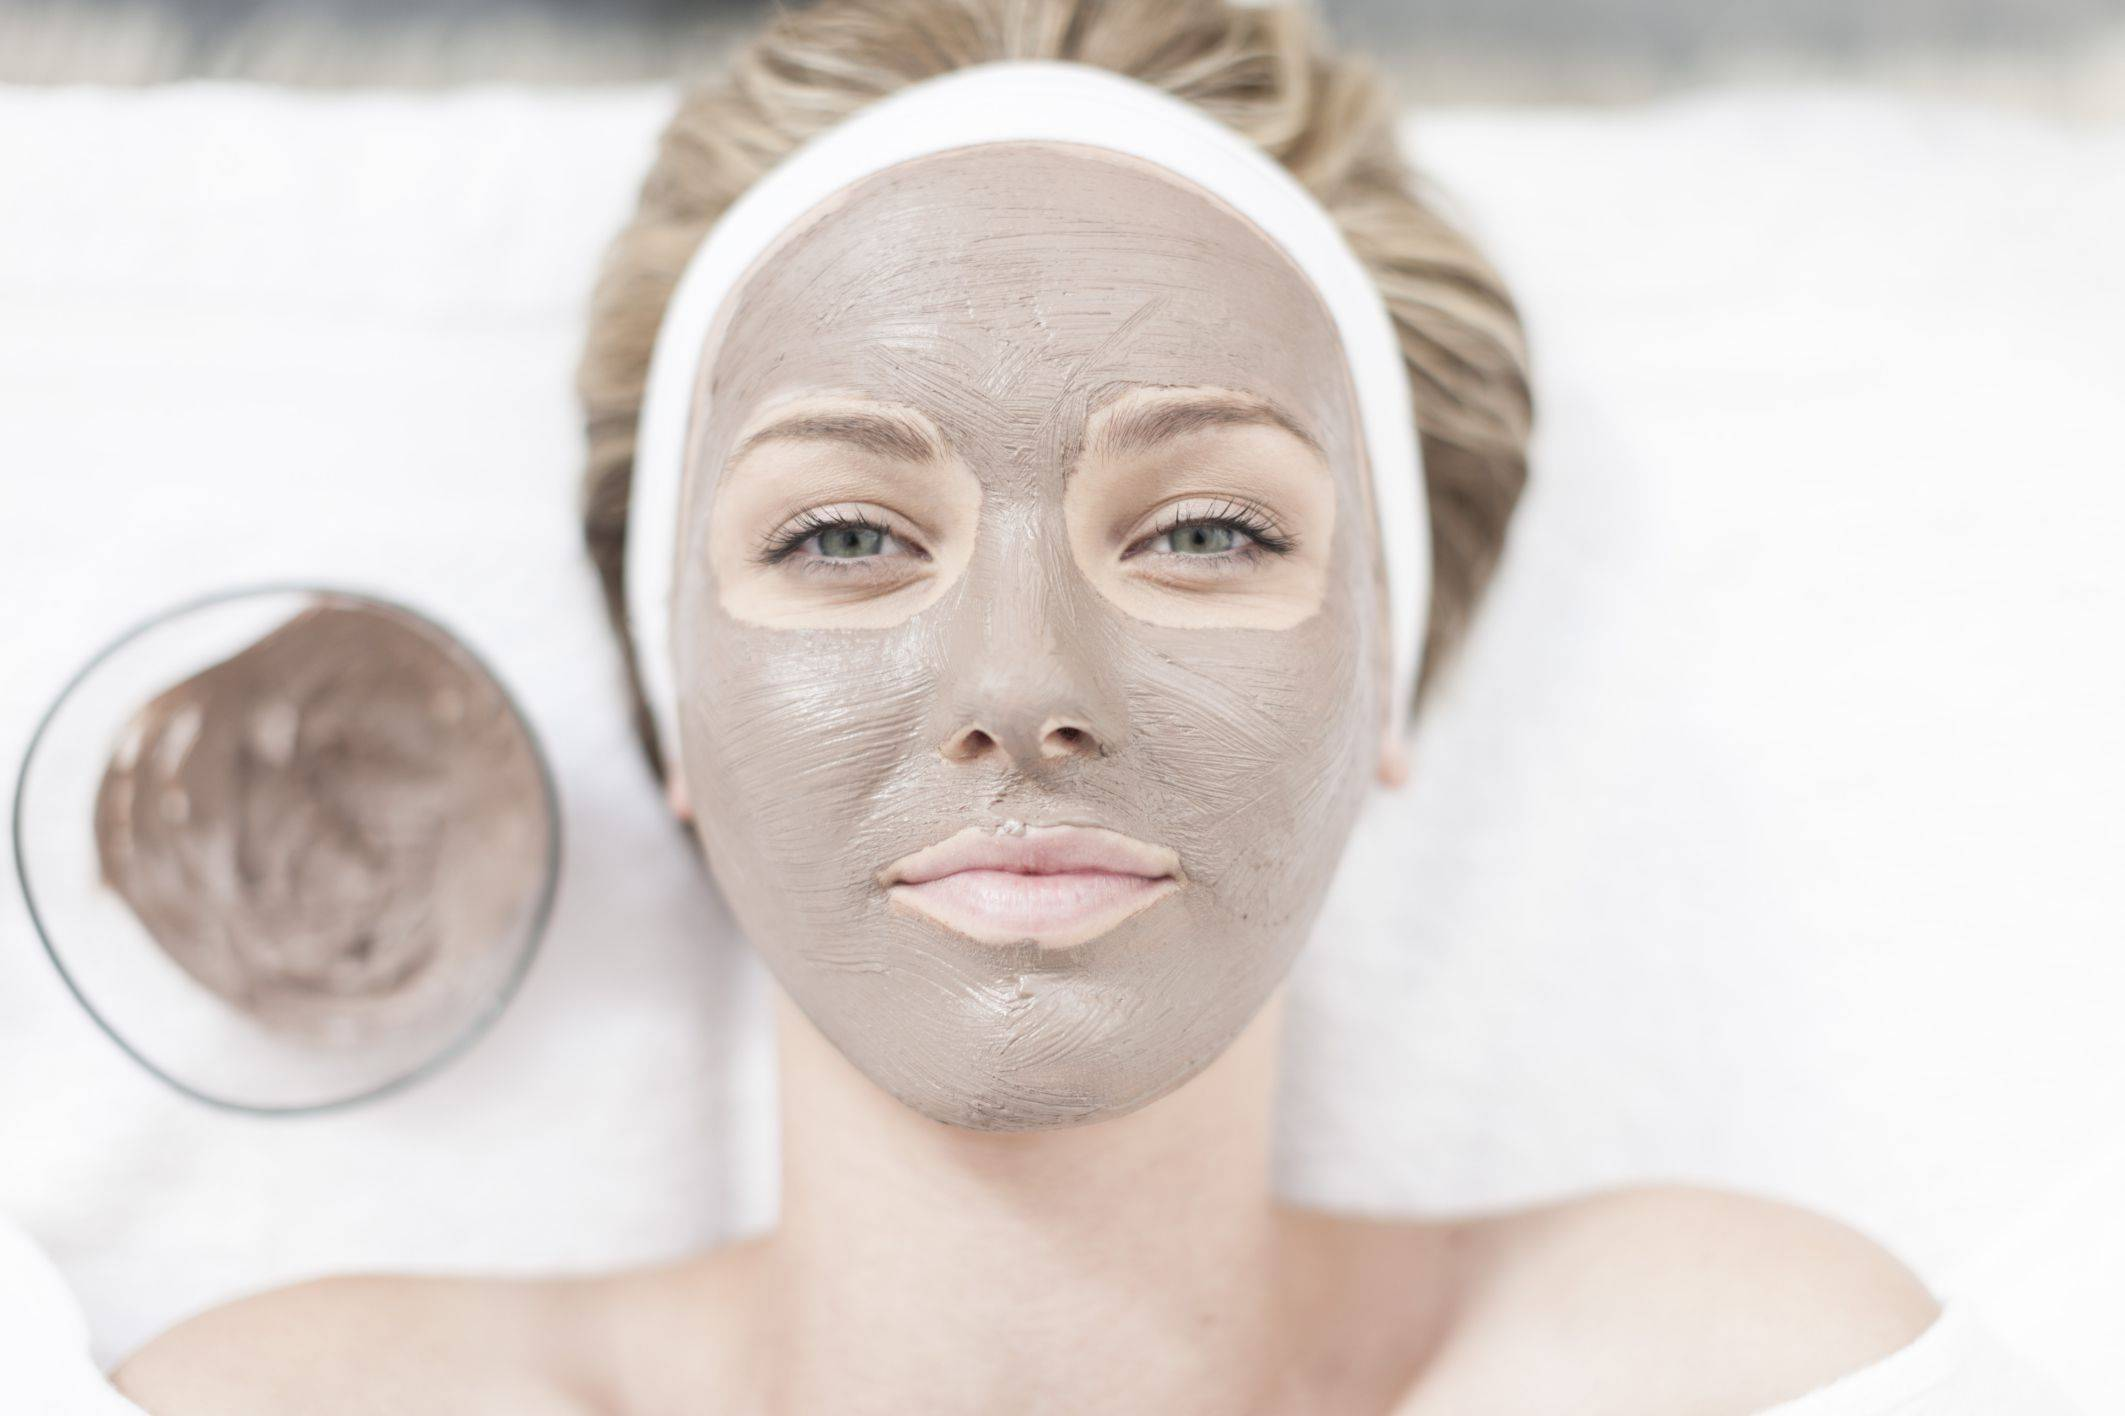 https://www.noscars.co.in/wp-content/uploads/2019/03/Anti-Aging-Facial-57256df75f9b589e34e7ae94.jpg